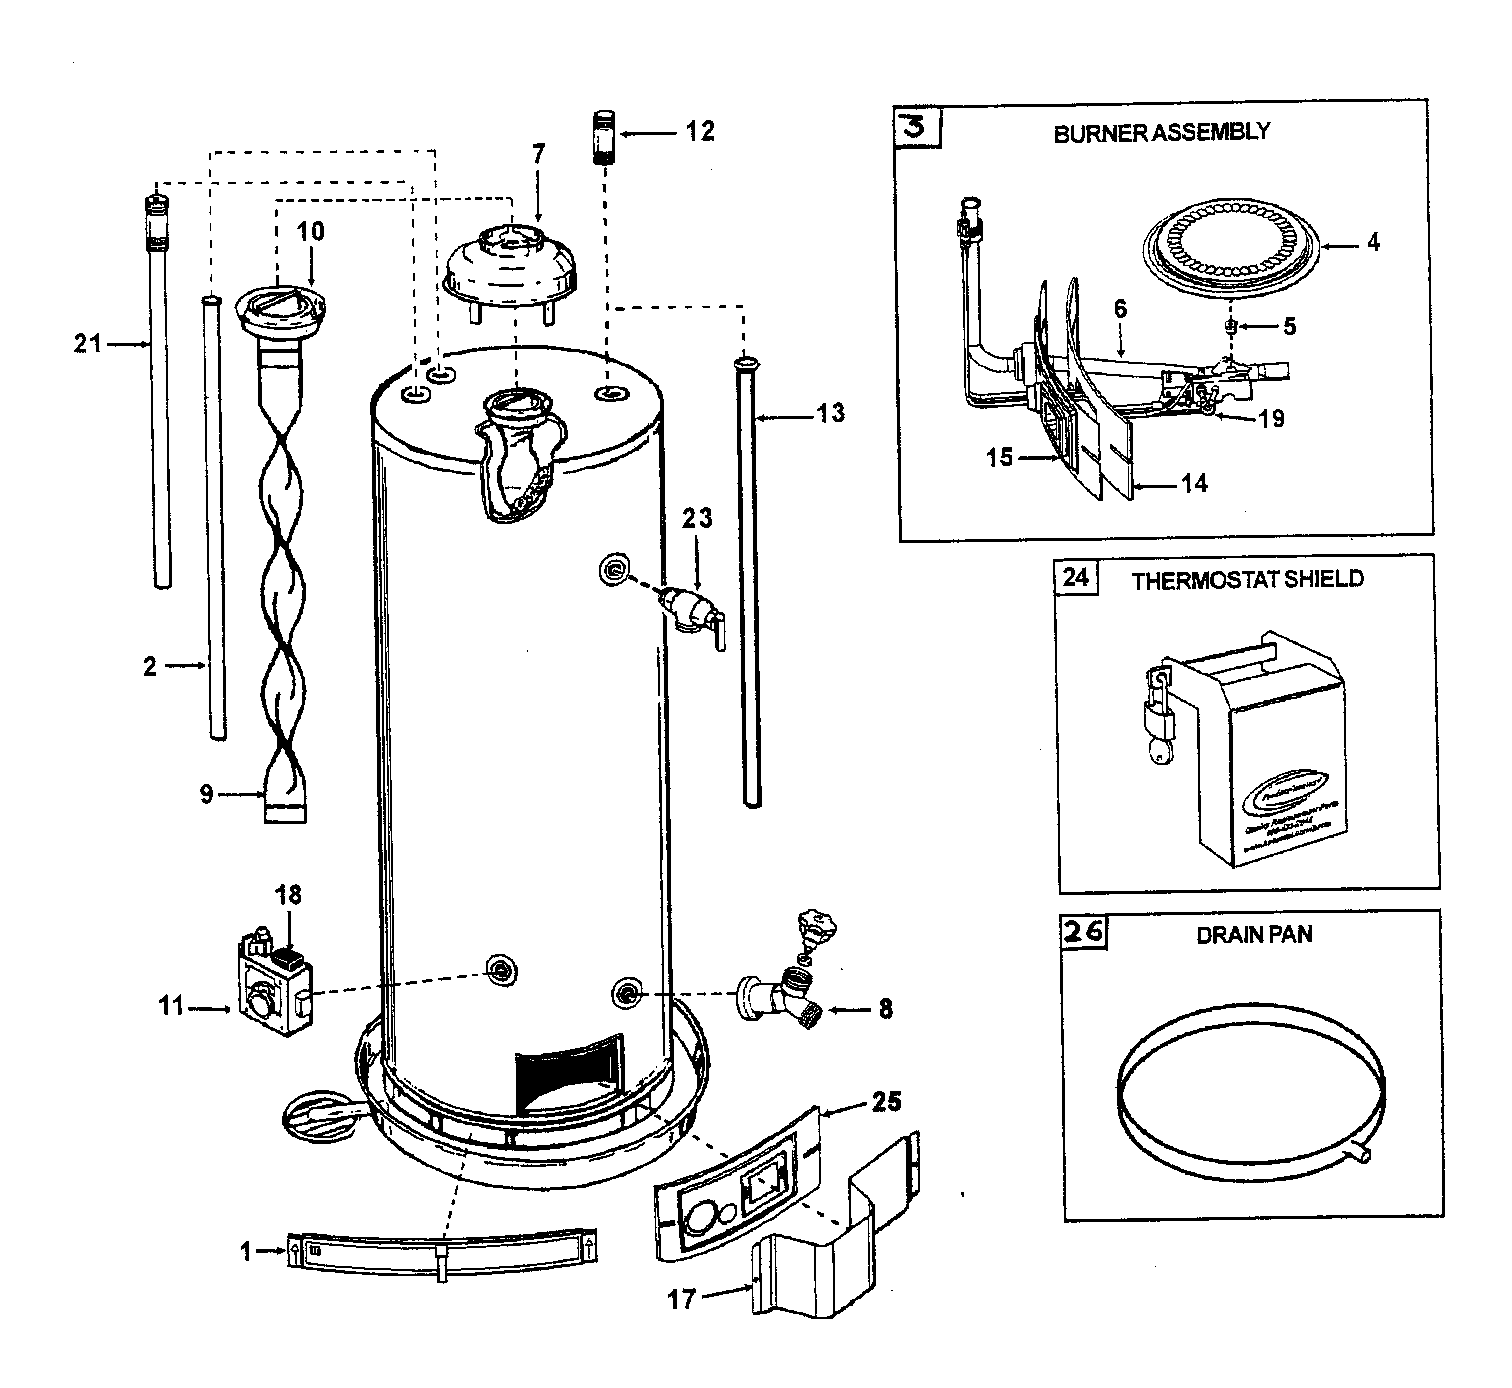 hight resolution of ao smith model gcv50 water heater gas genuine parts ao smith water heater parts water heater burner diagram